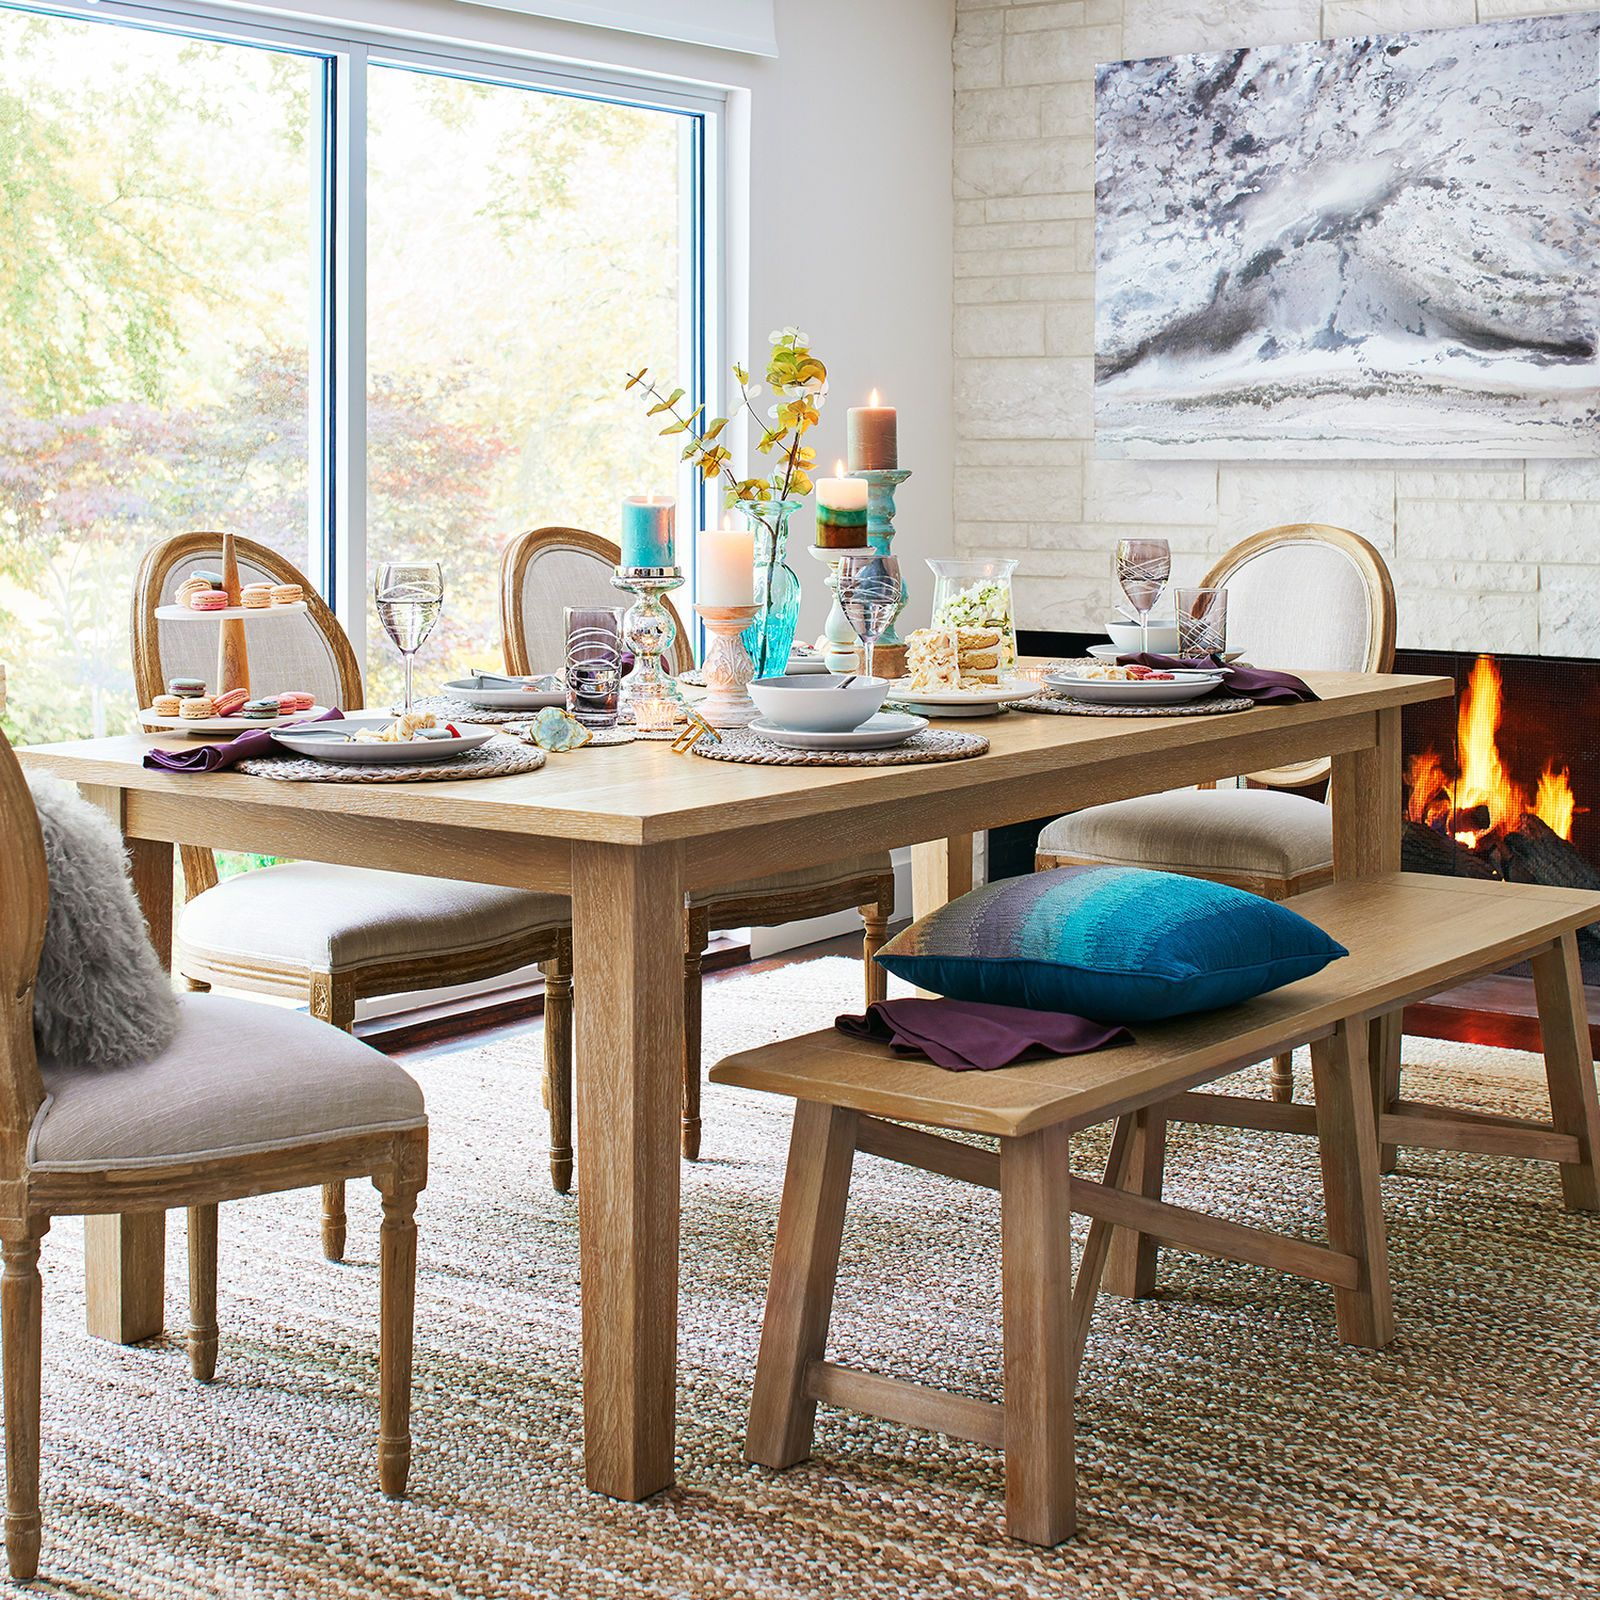 Build Your Own Torrance Natural Whitewash Dining Collection Whitewash Dining Table Dining Room Furniture Dining Room Table